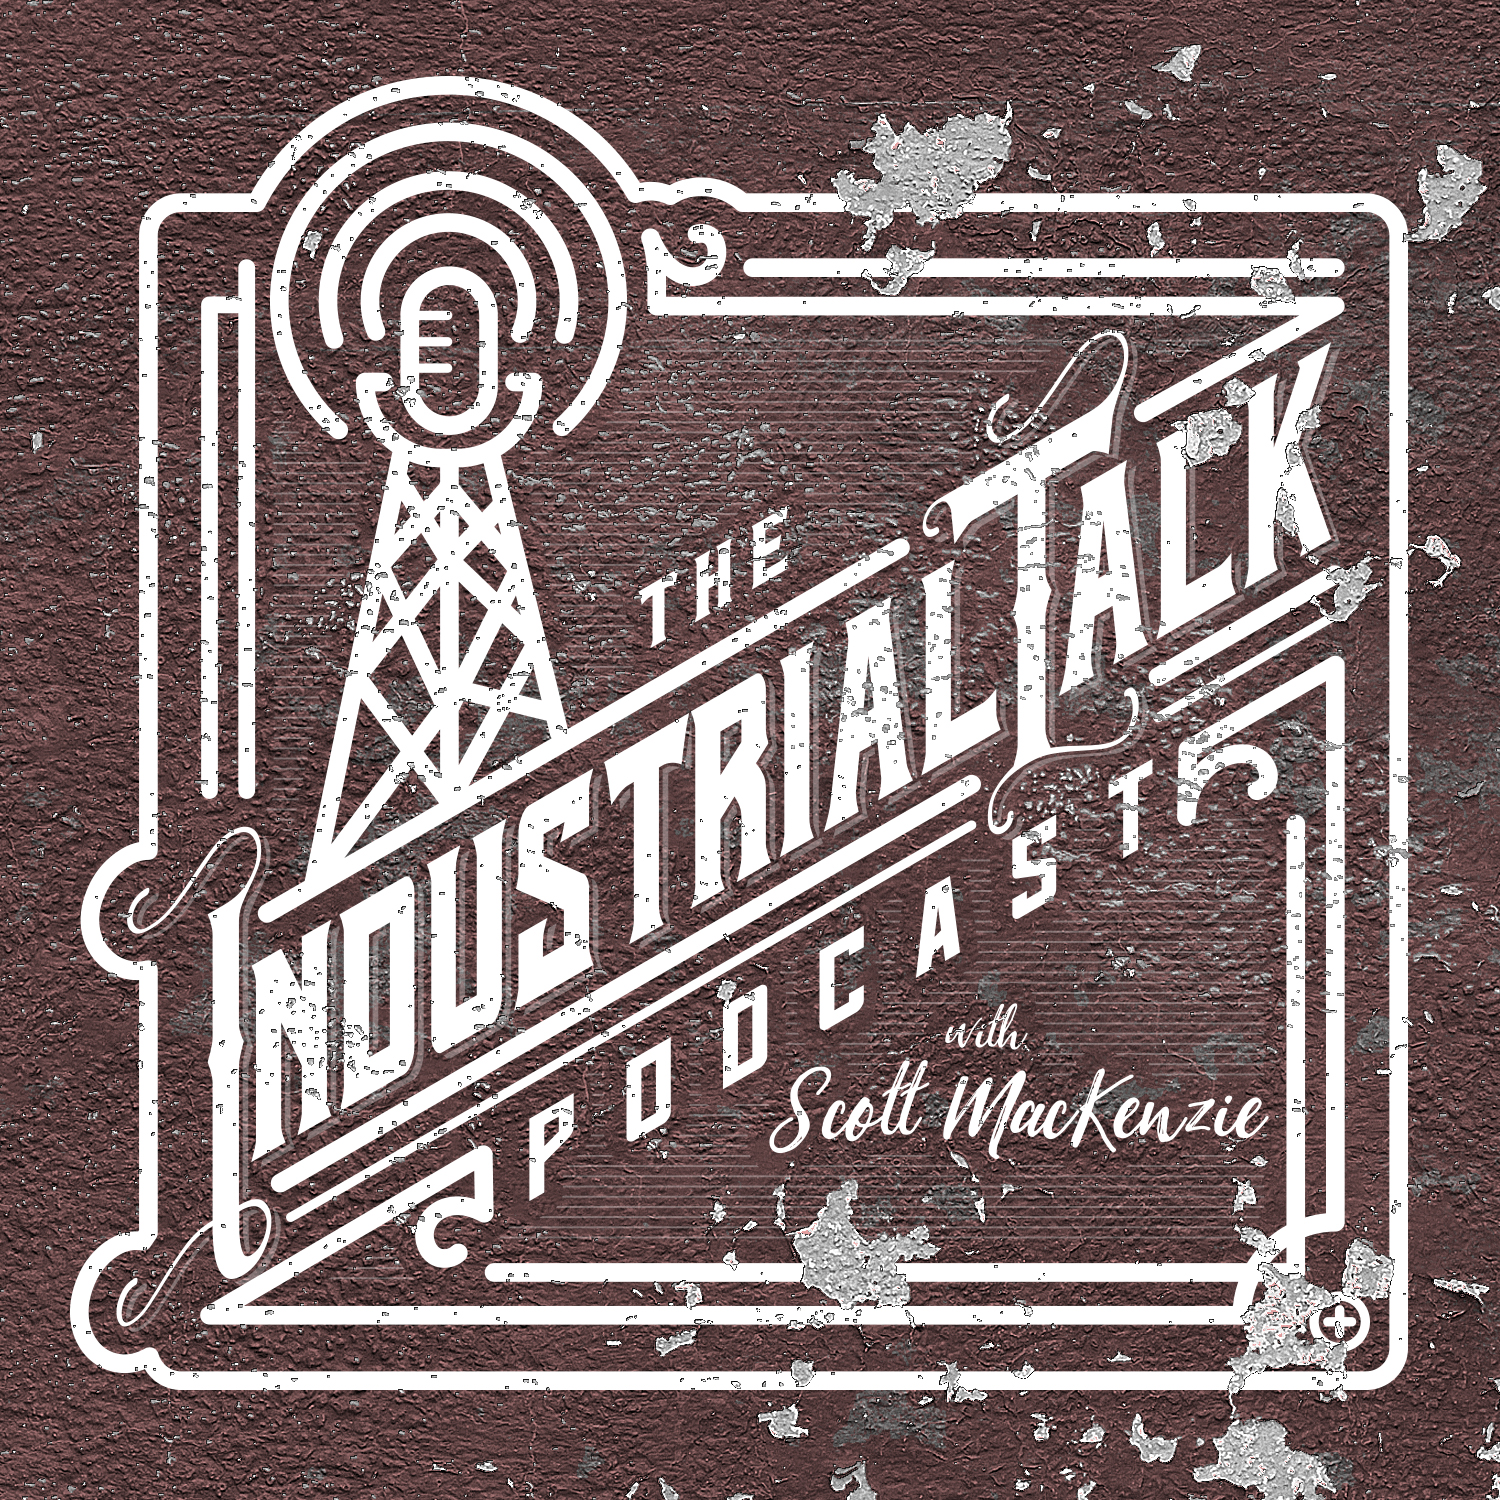 Artwork for podcast The Industrial Talk Podcast with Scott MacKenzie